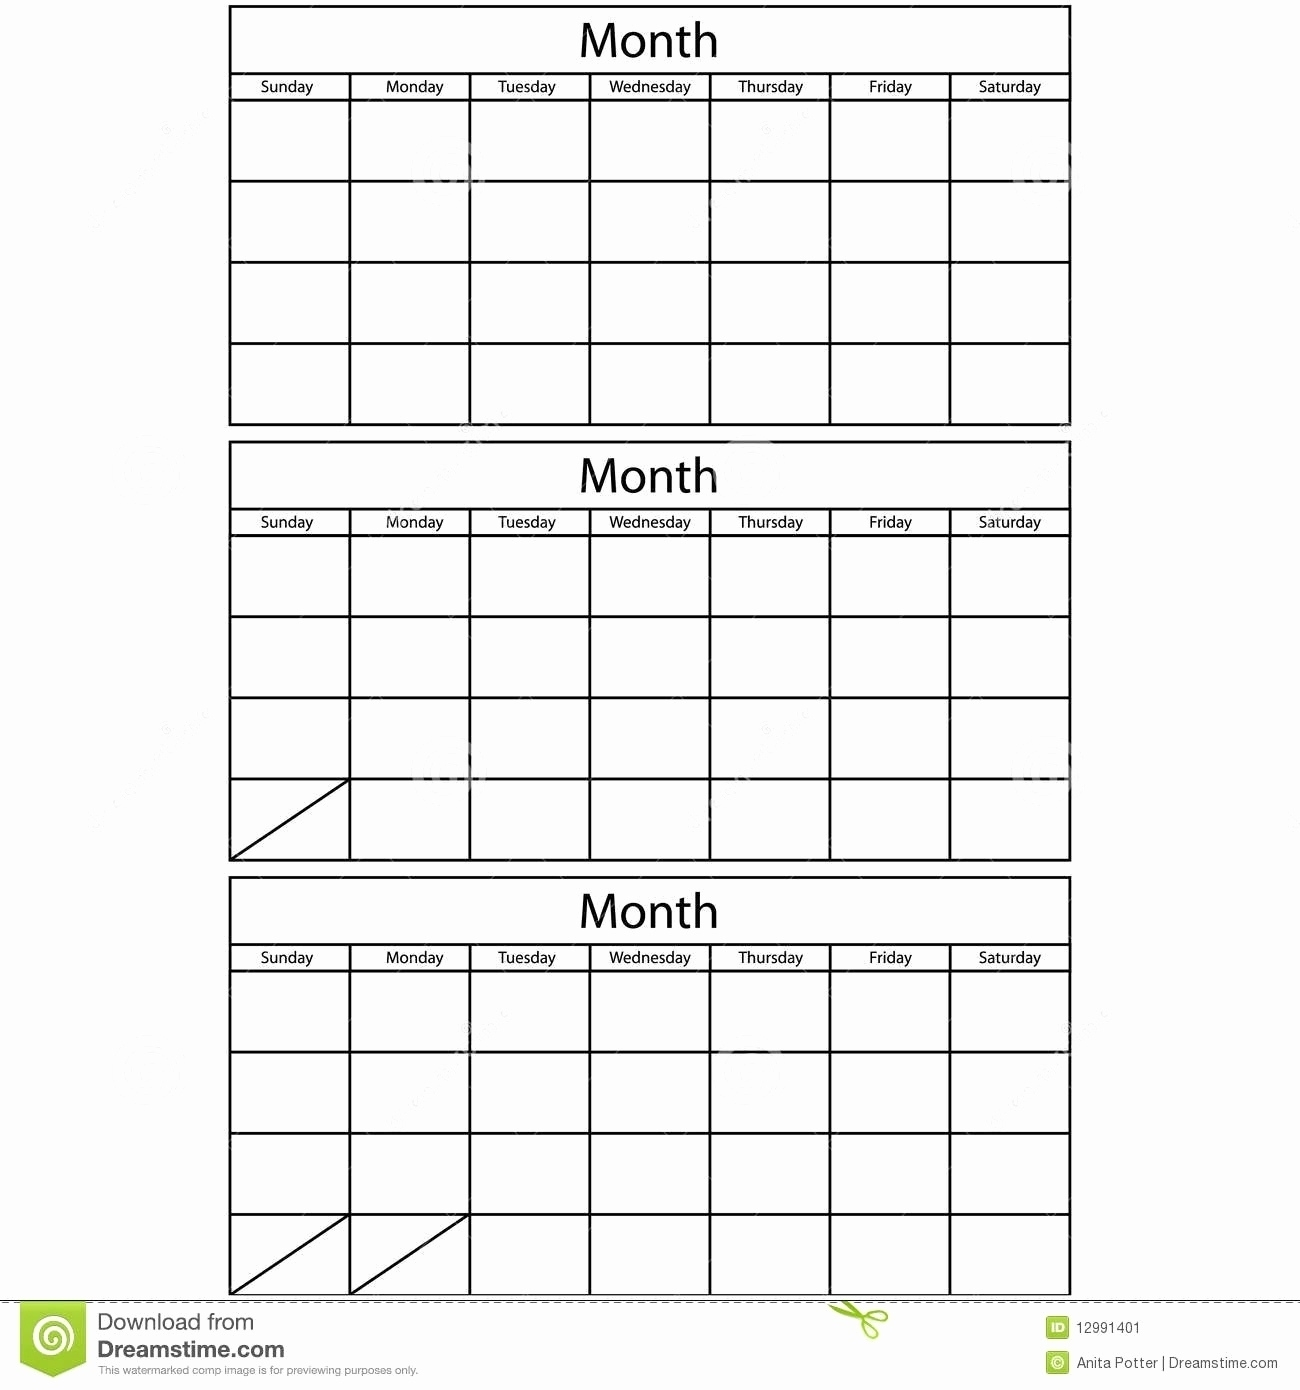 3 Month Planning Calendar Free Printable • Printable Blank Calendar intended for Blank 3 Month Printable Monthly Calendar